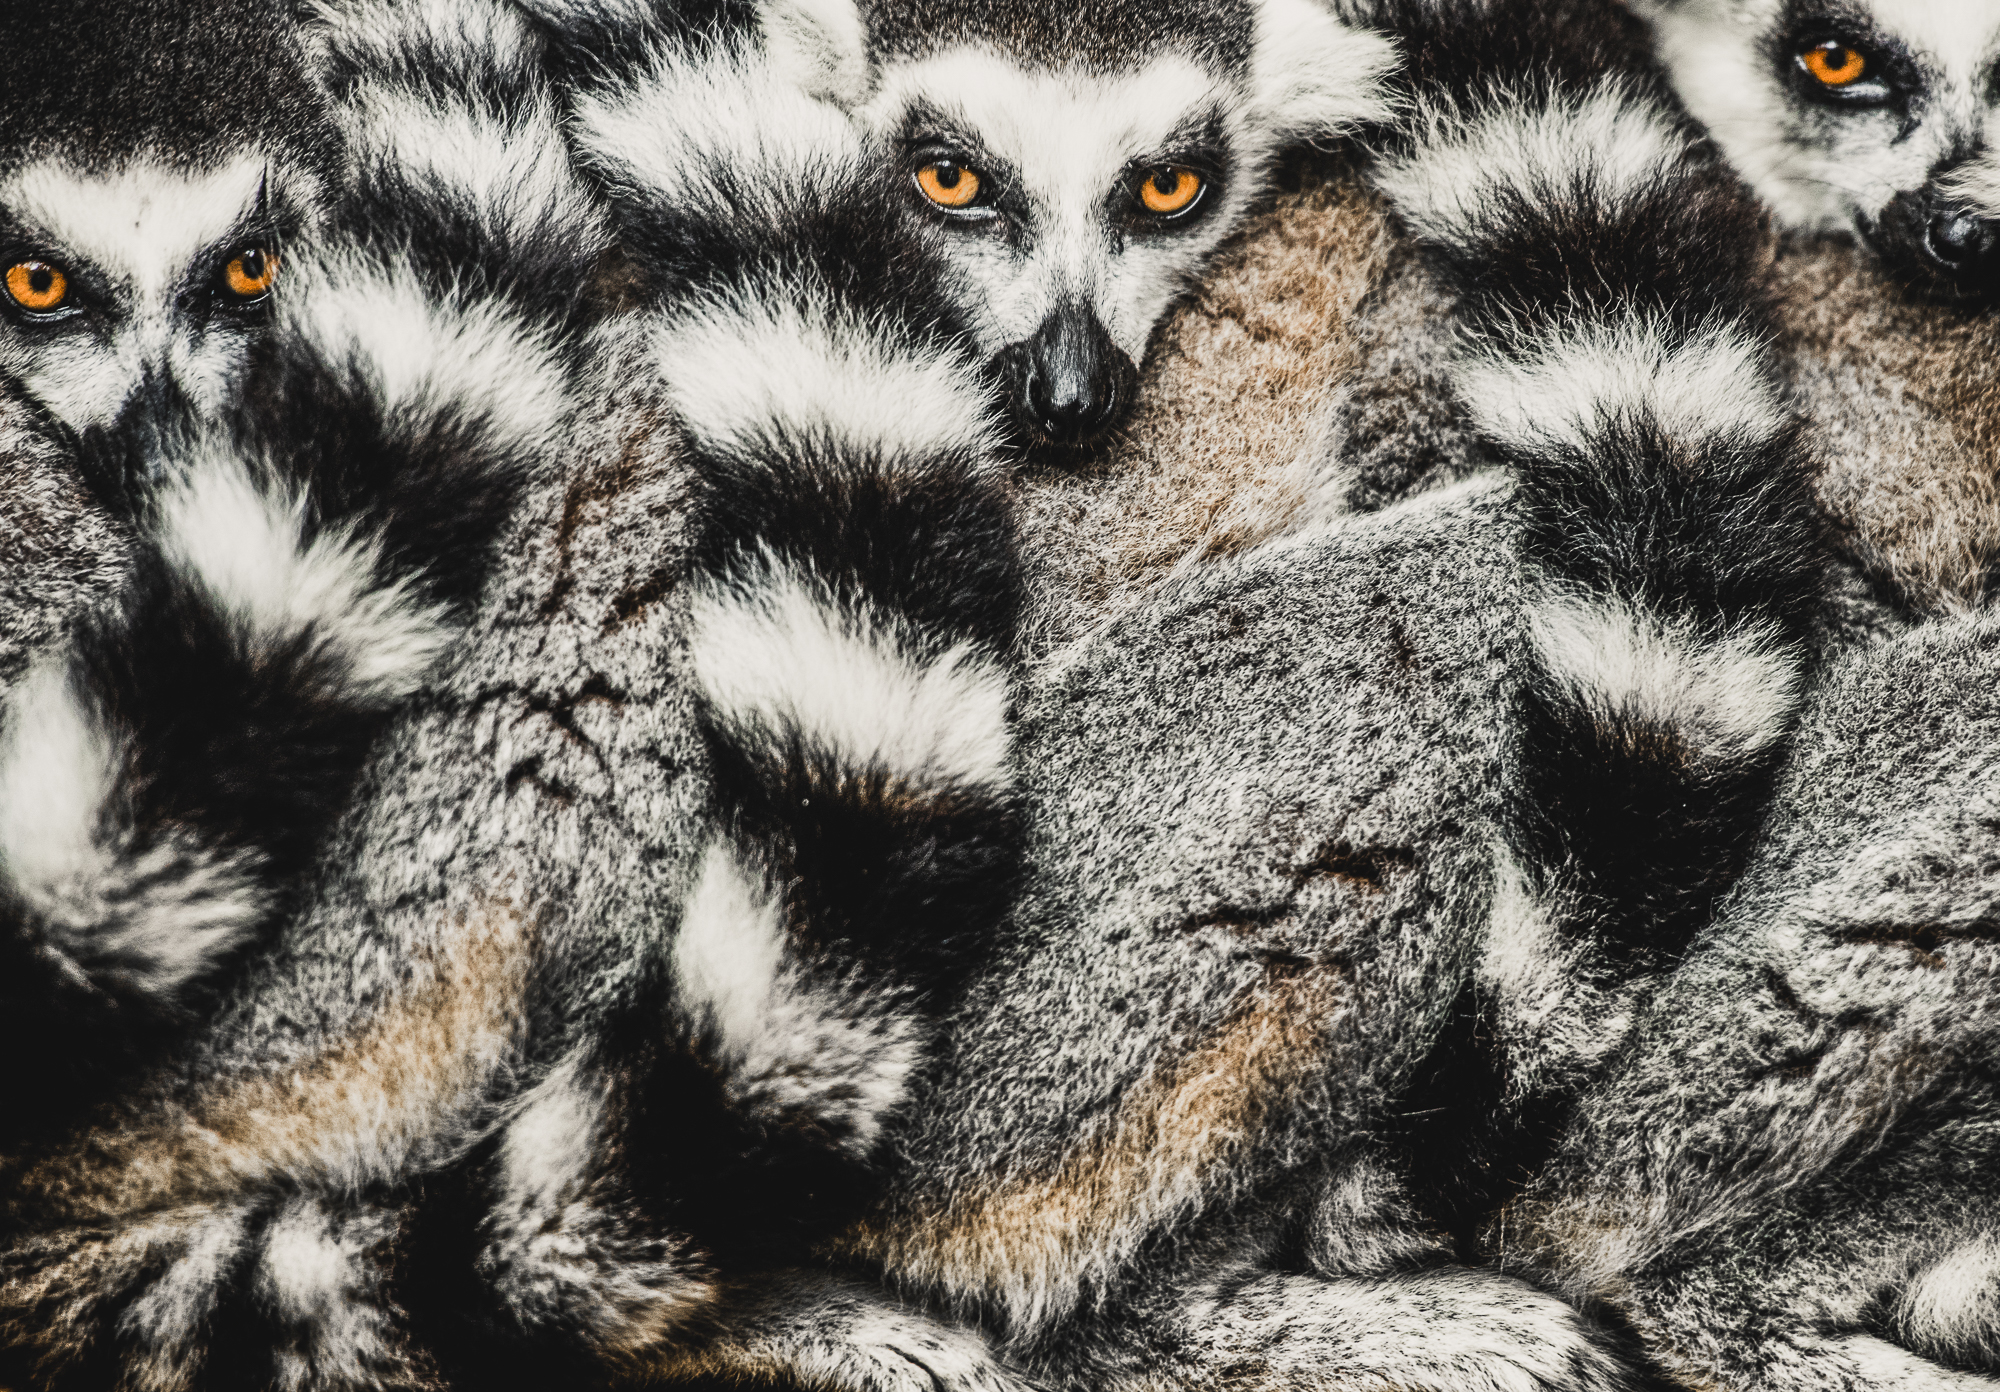 A group ring tailed lemurs sitting together